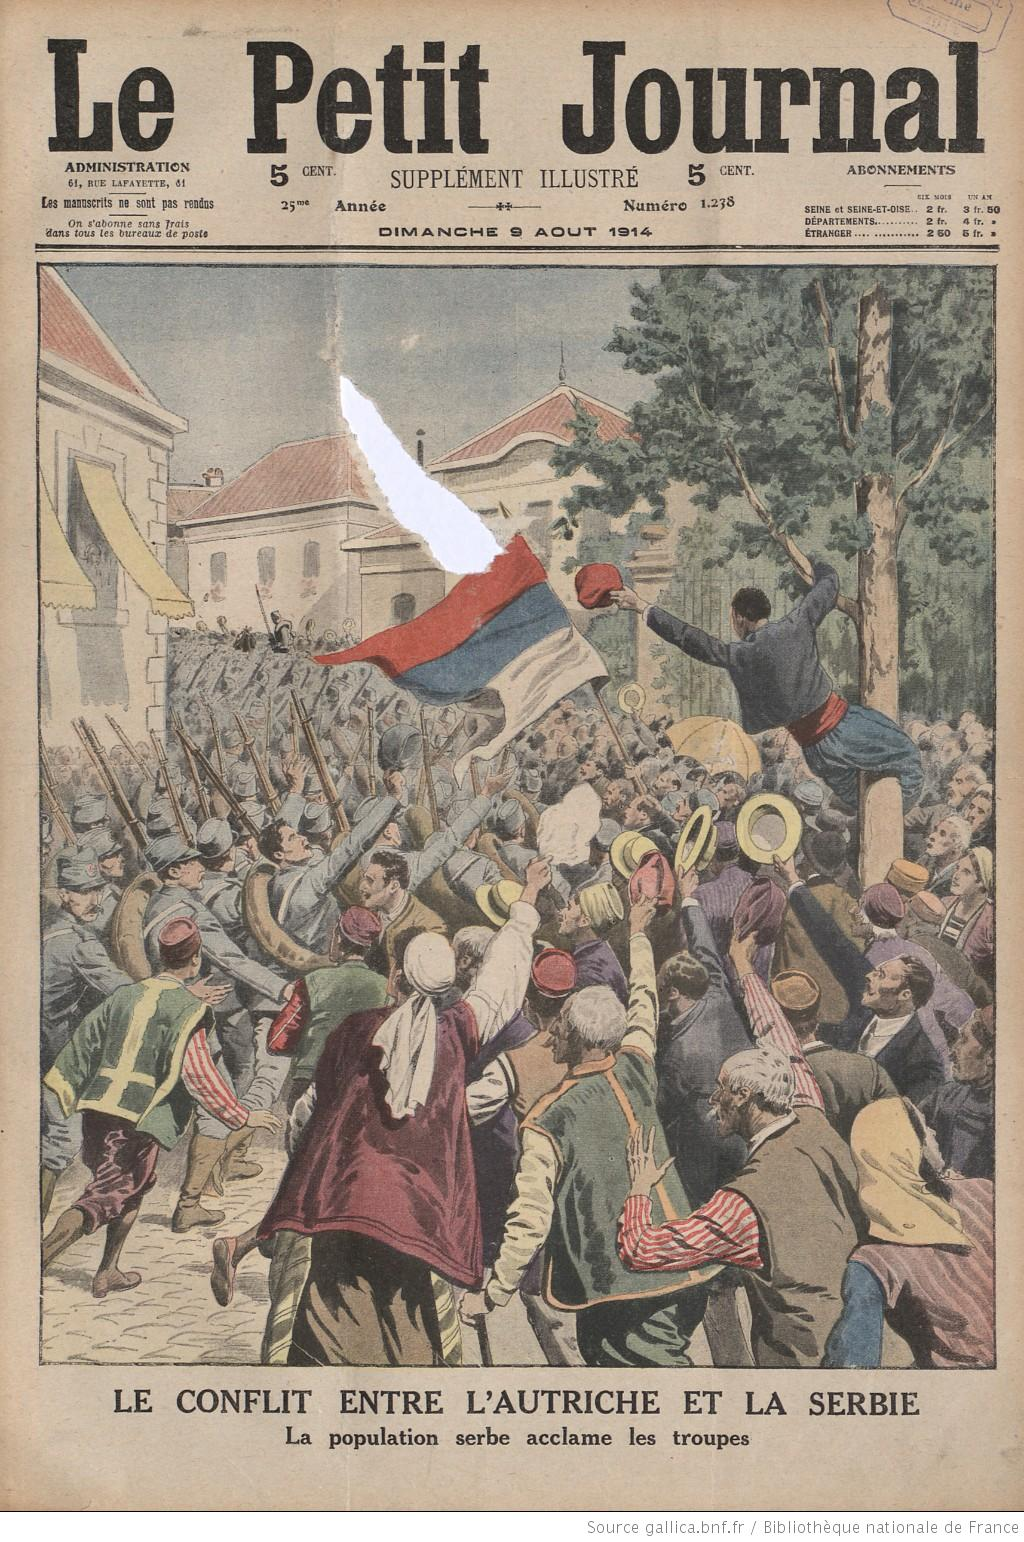 A French magazine cover extols the courage of the Serbian people